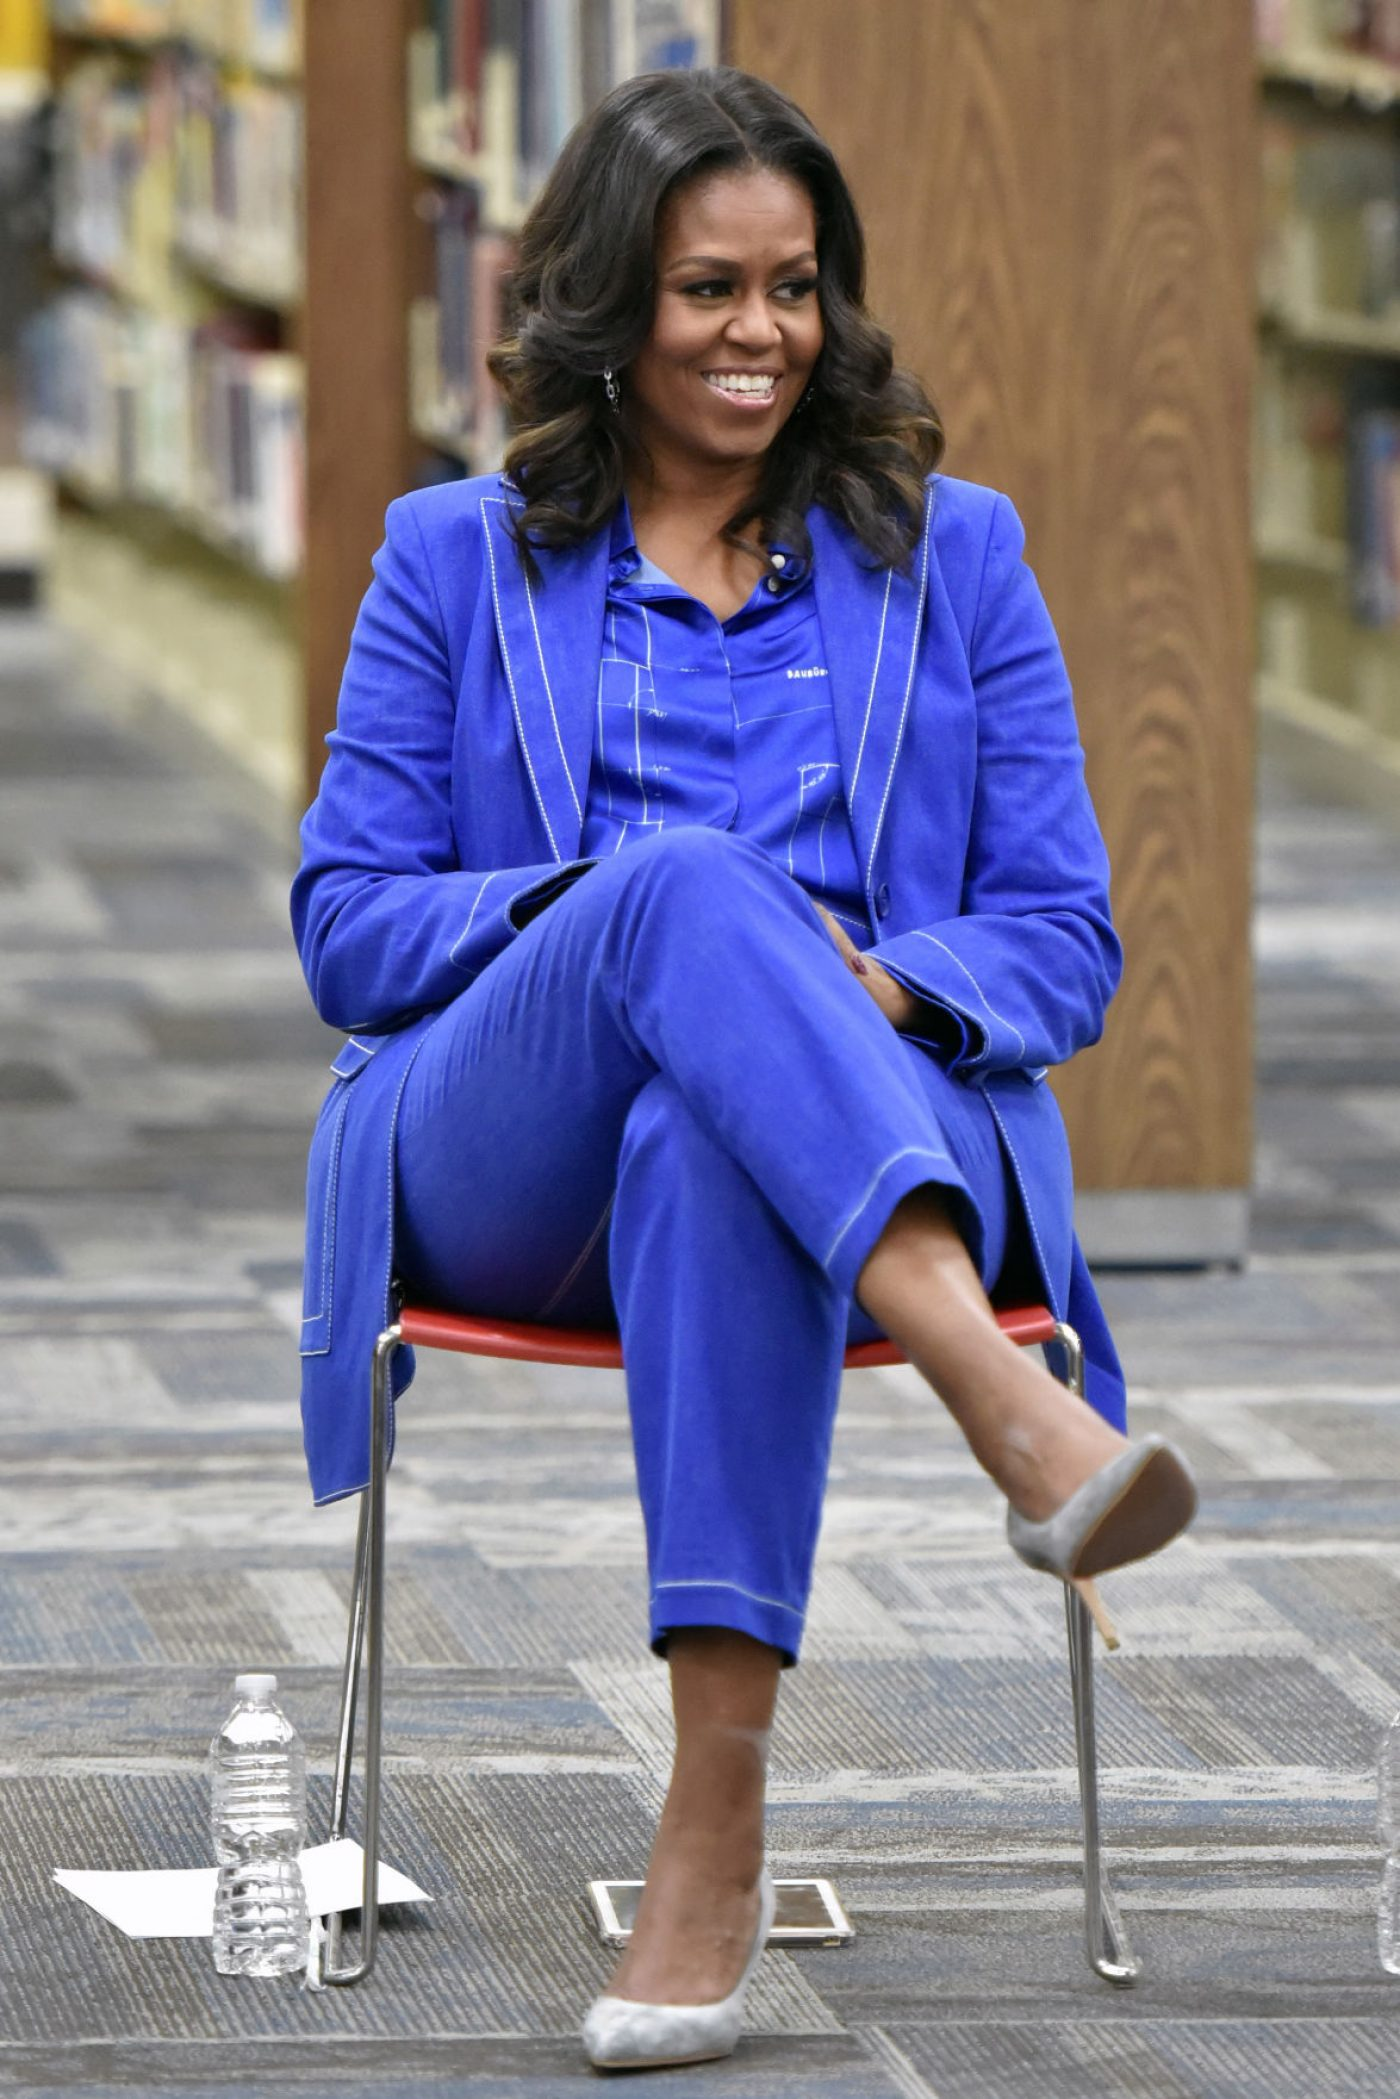 michelle-obama-becoming-whitney-M-young-magnet-high-school